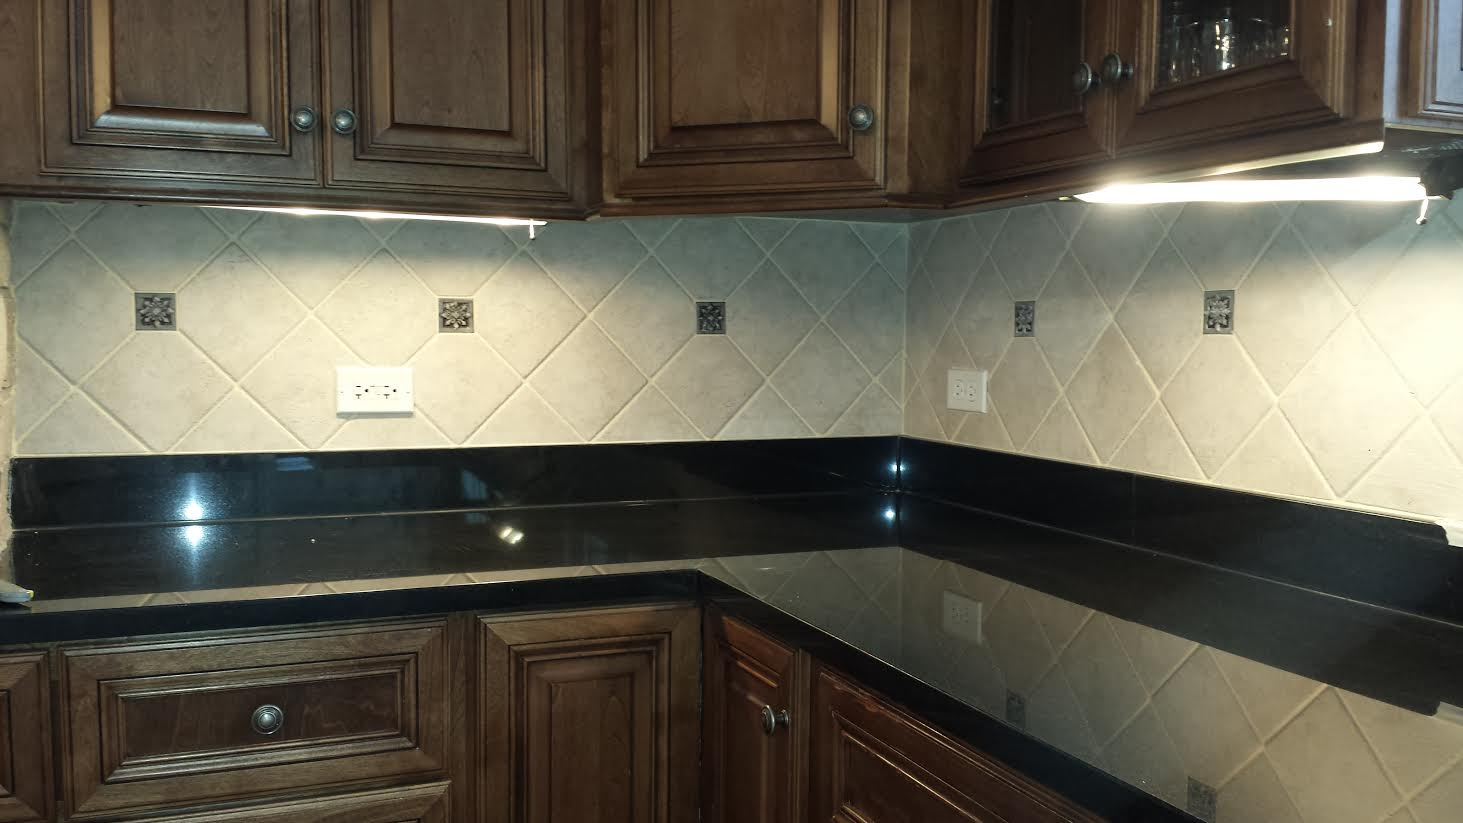 Drywall Repair, Painting & Remodeling  Naperville, Aurora. Electrolux Kitchen Appliance Packages. Types Of Kitchen Tiles. Where To Store Kitchen Appliances. Kitchen Tile. Tiles Ideas For Kitchens. Ideas For Tile Backsplash In Kitchen. Cheap Kitchen Tiles Online. Teka Kitchen Appliances